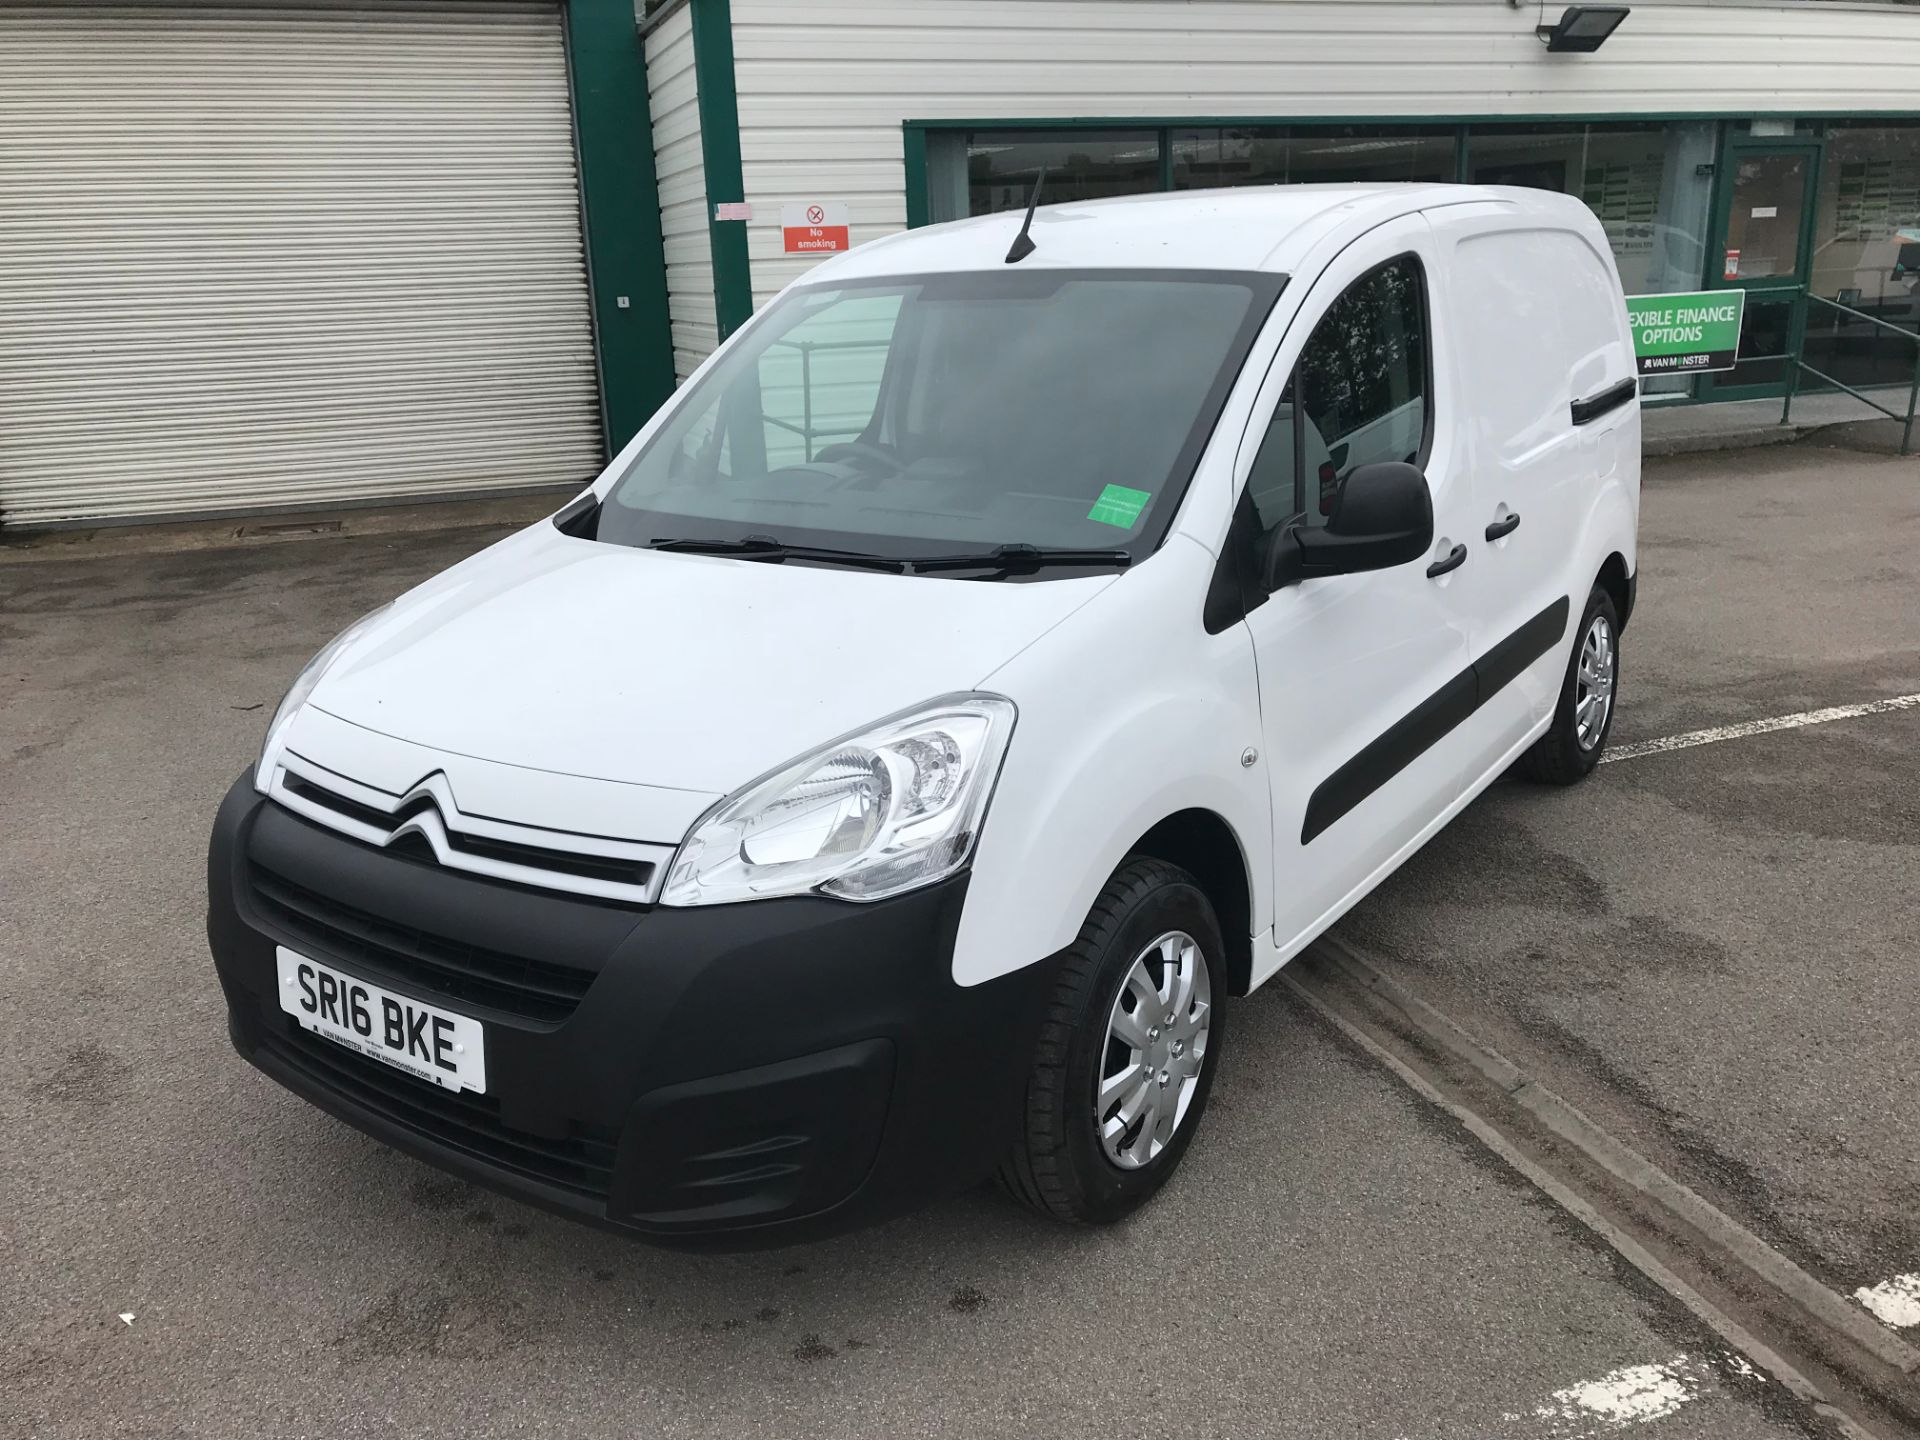 2016 Citroen Berlingo L1 DIESEL 1.6 HDI 625KG ENTERPRISE 75PS EURO 4/5 (SR16BKE) Image 22